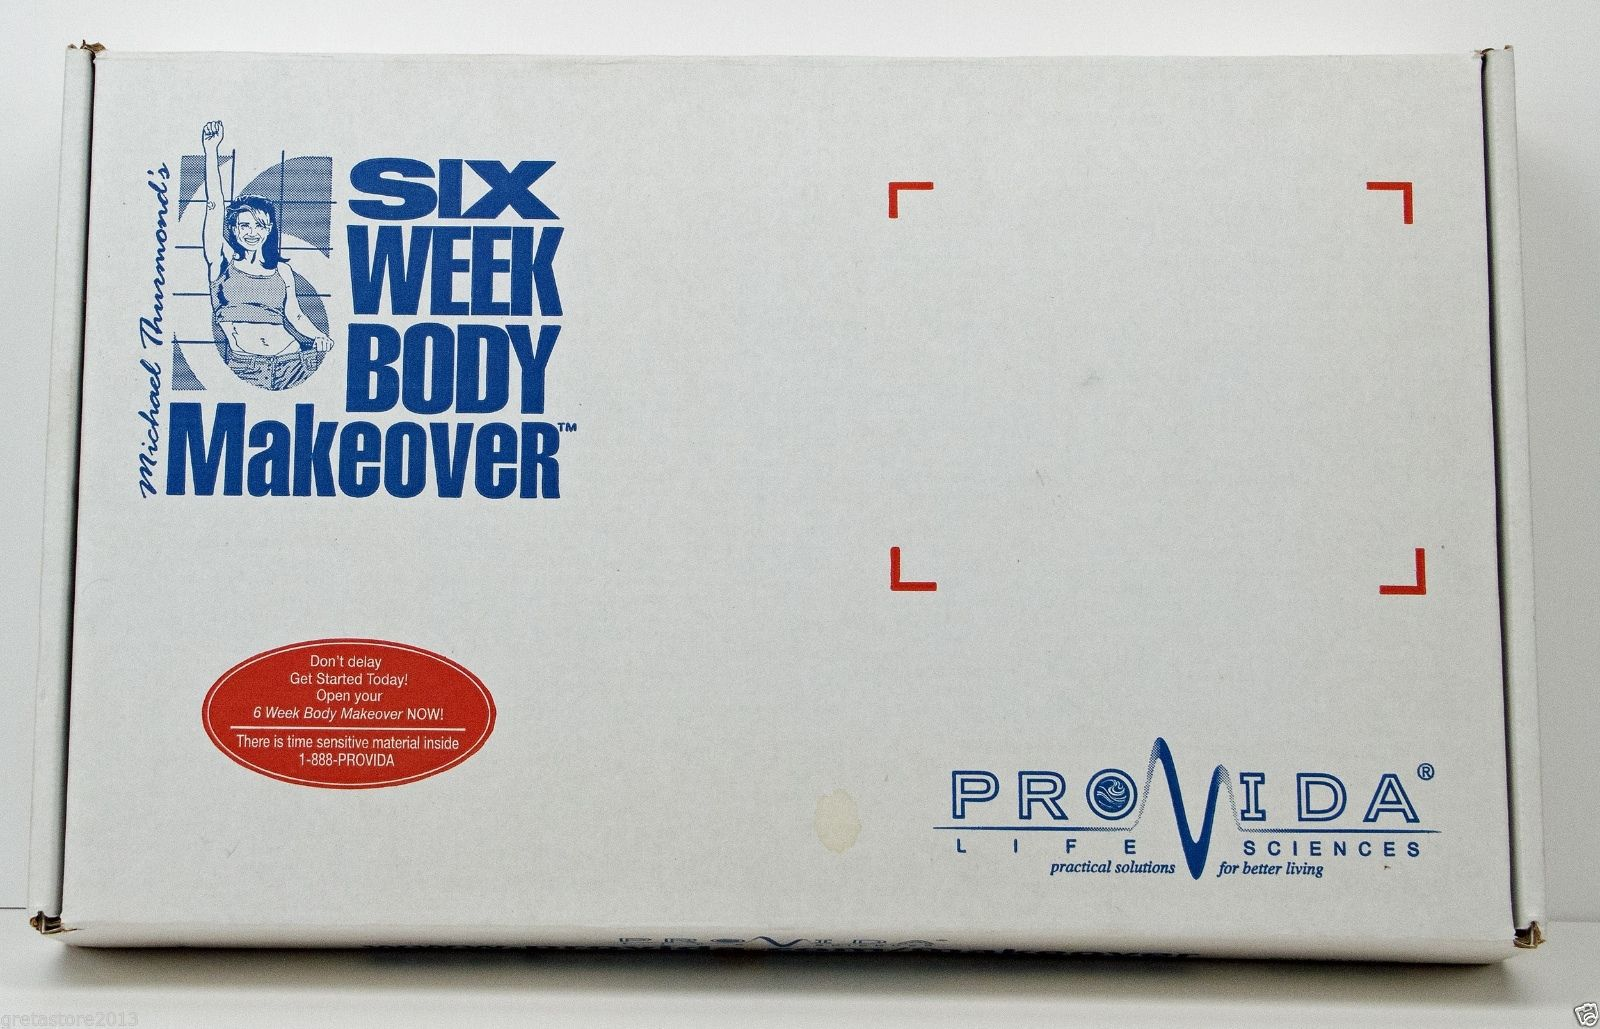 Diet Reviews Blog The Results Past Initial Six WeekThe 6 Week Body Makover Is A Program That Intends To Assist You Makeover